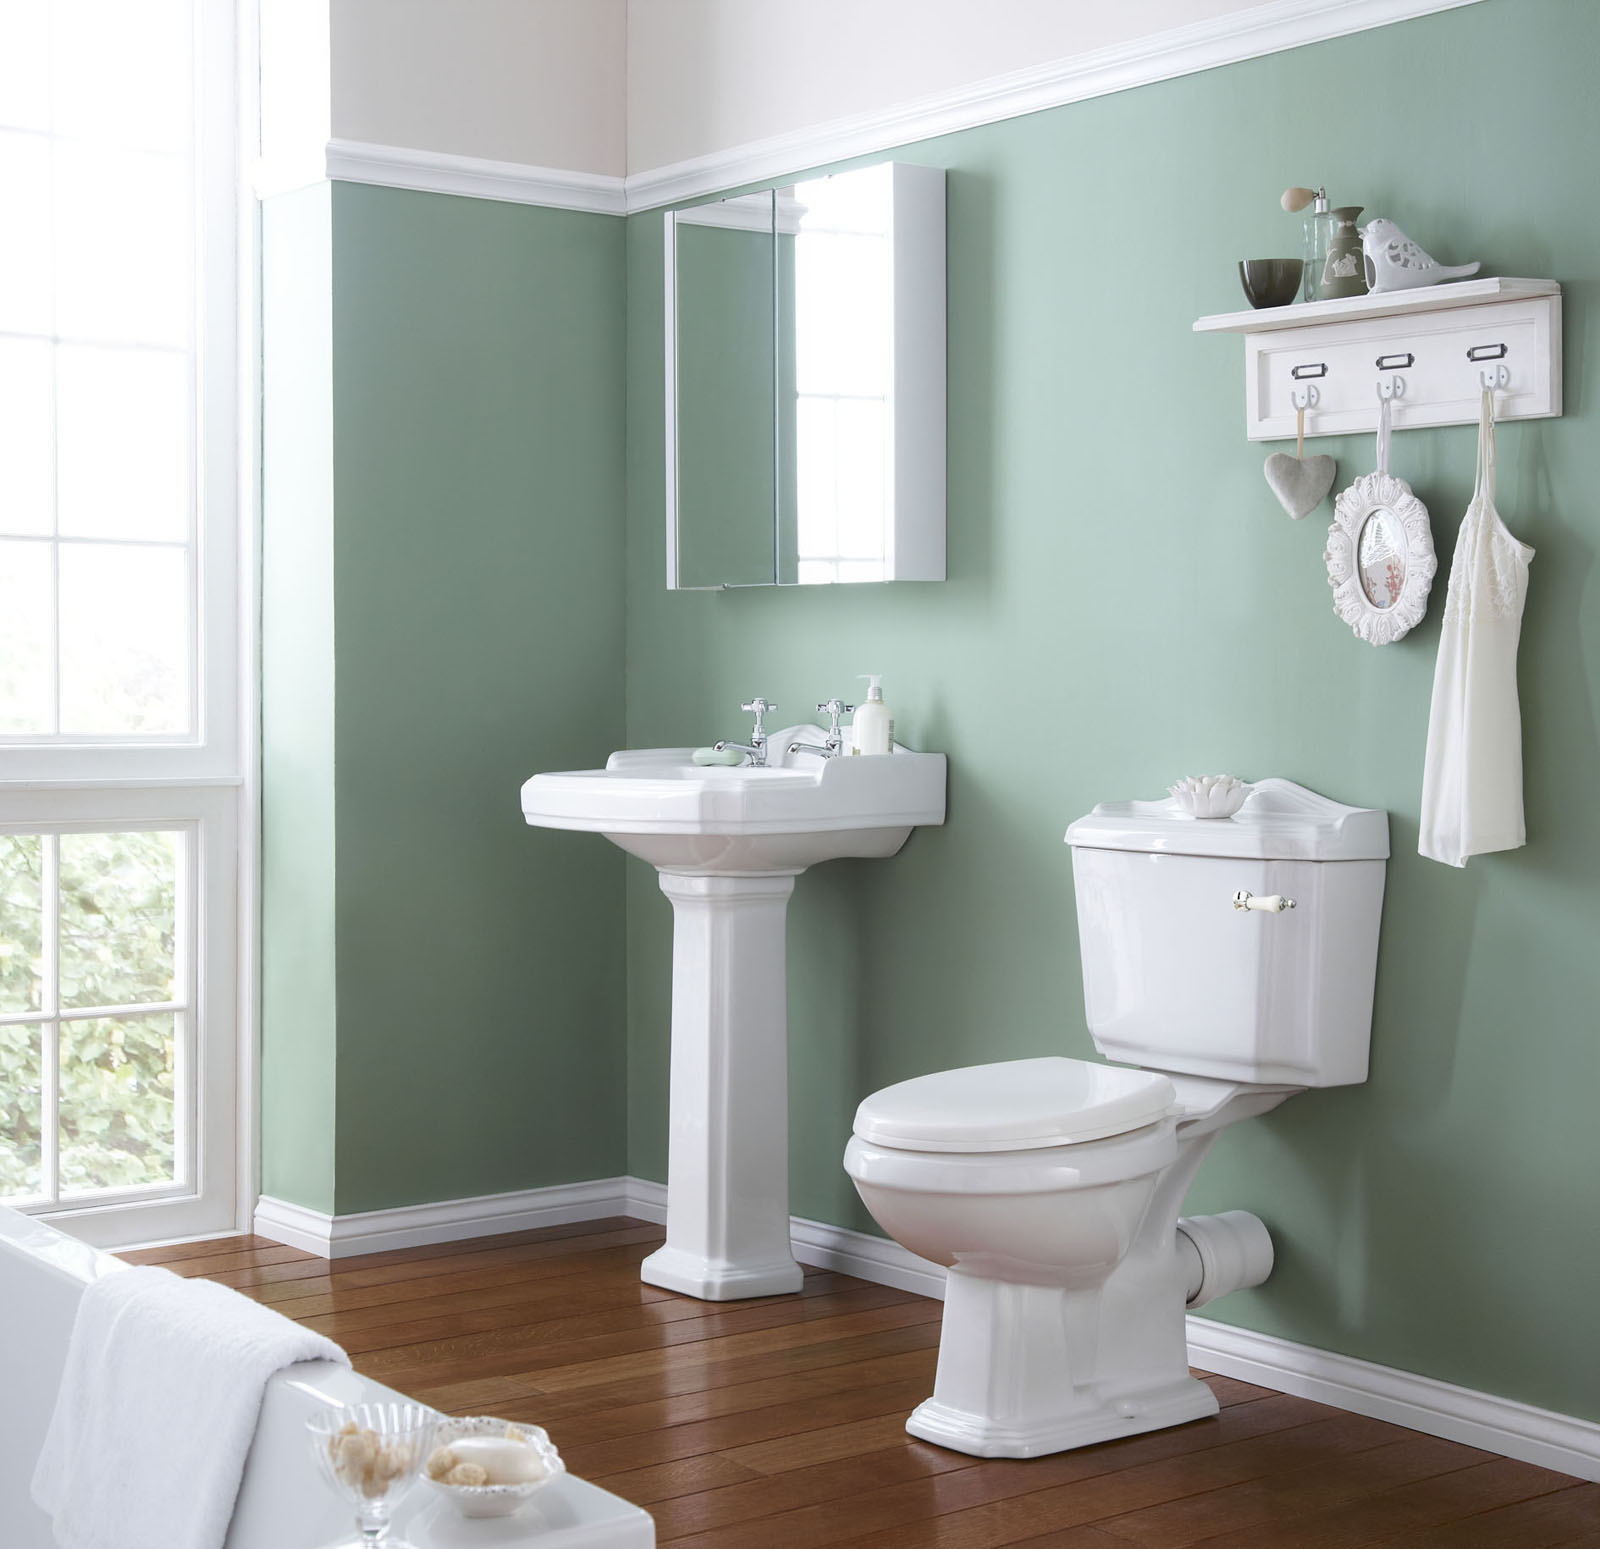 Choosing The Right Paint Colour For Your Bathroom Murphy Brothers Decorators